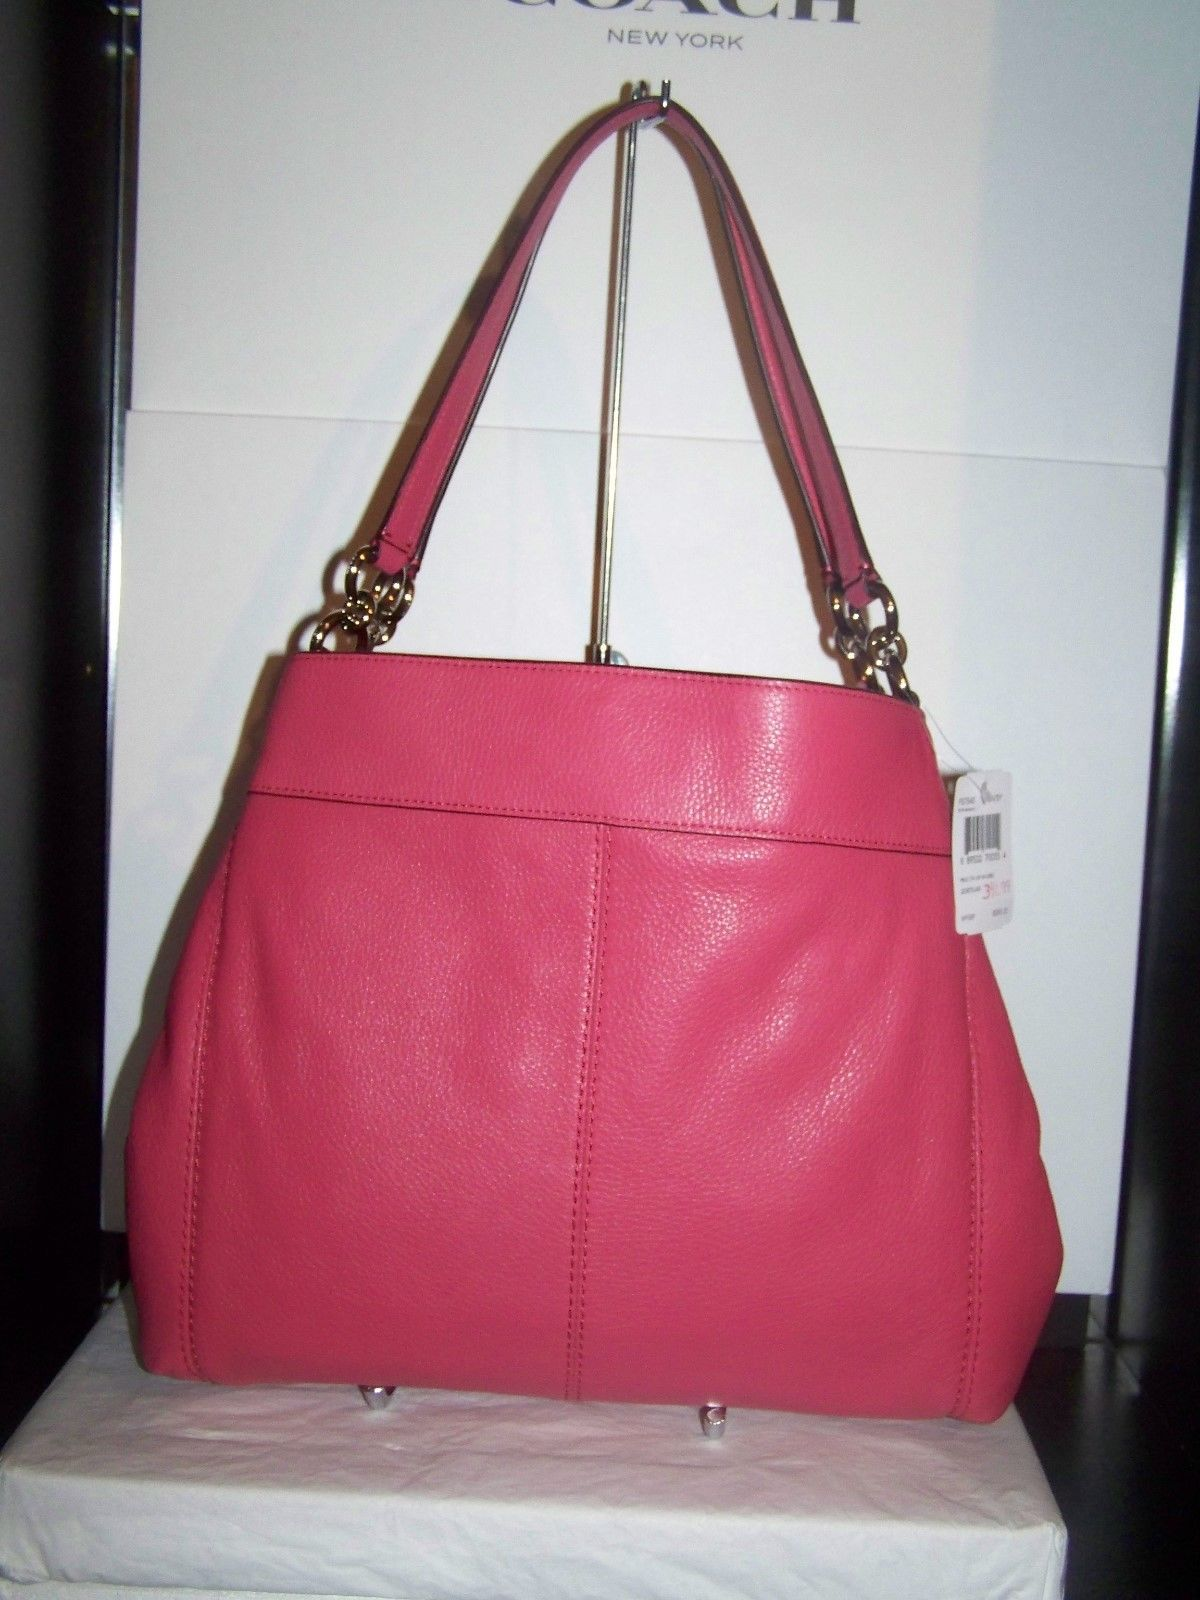 Coach Pebbled Leather Lexy Tote Shoulder Bag F57545 Strawberry Pink $395 NWT